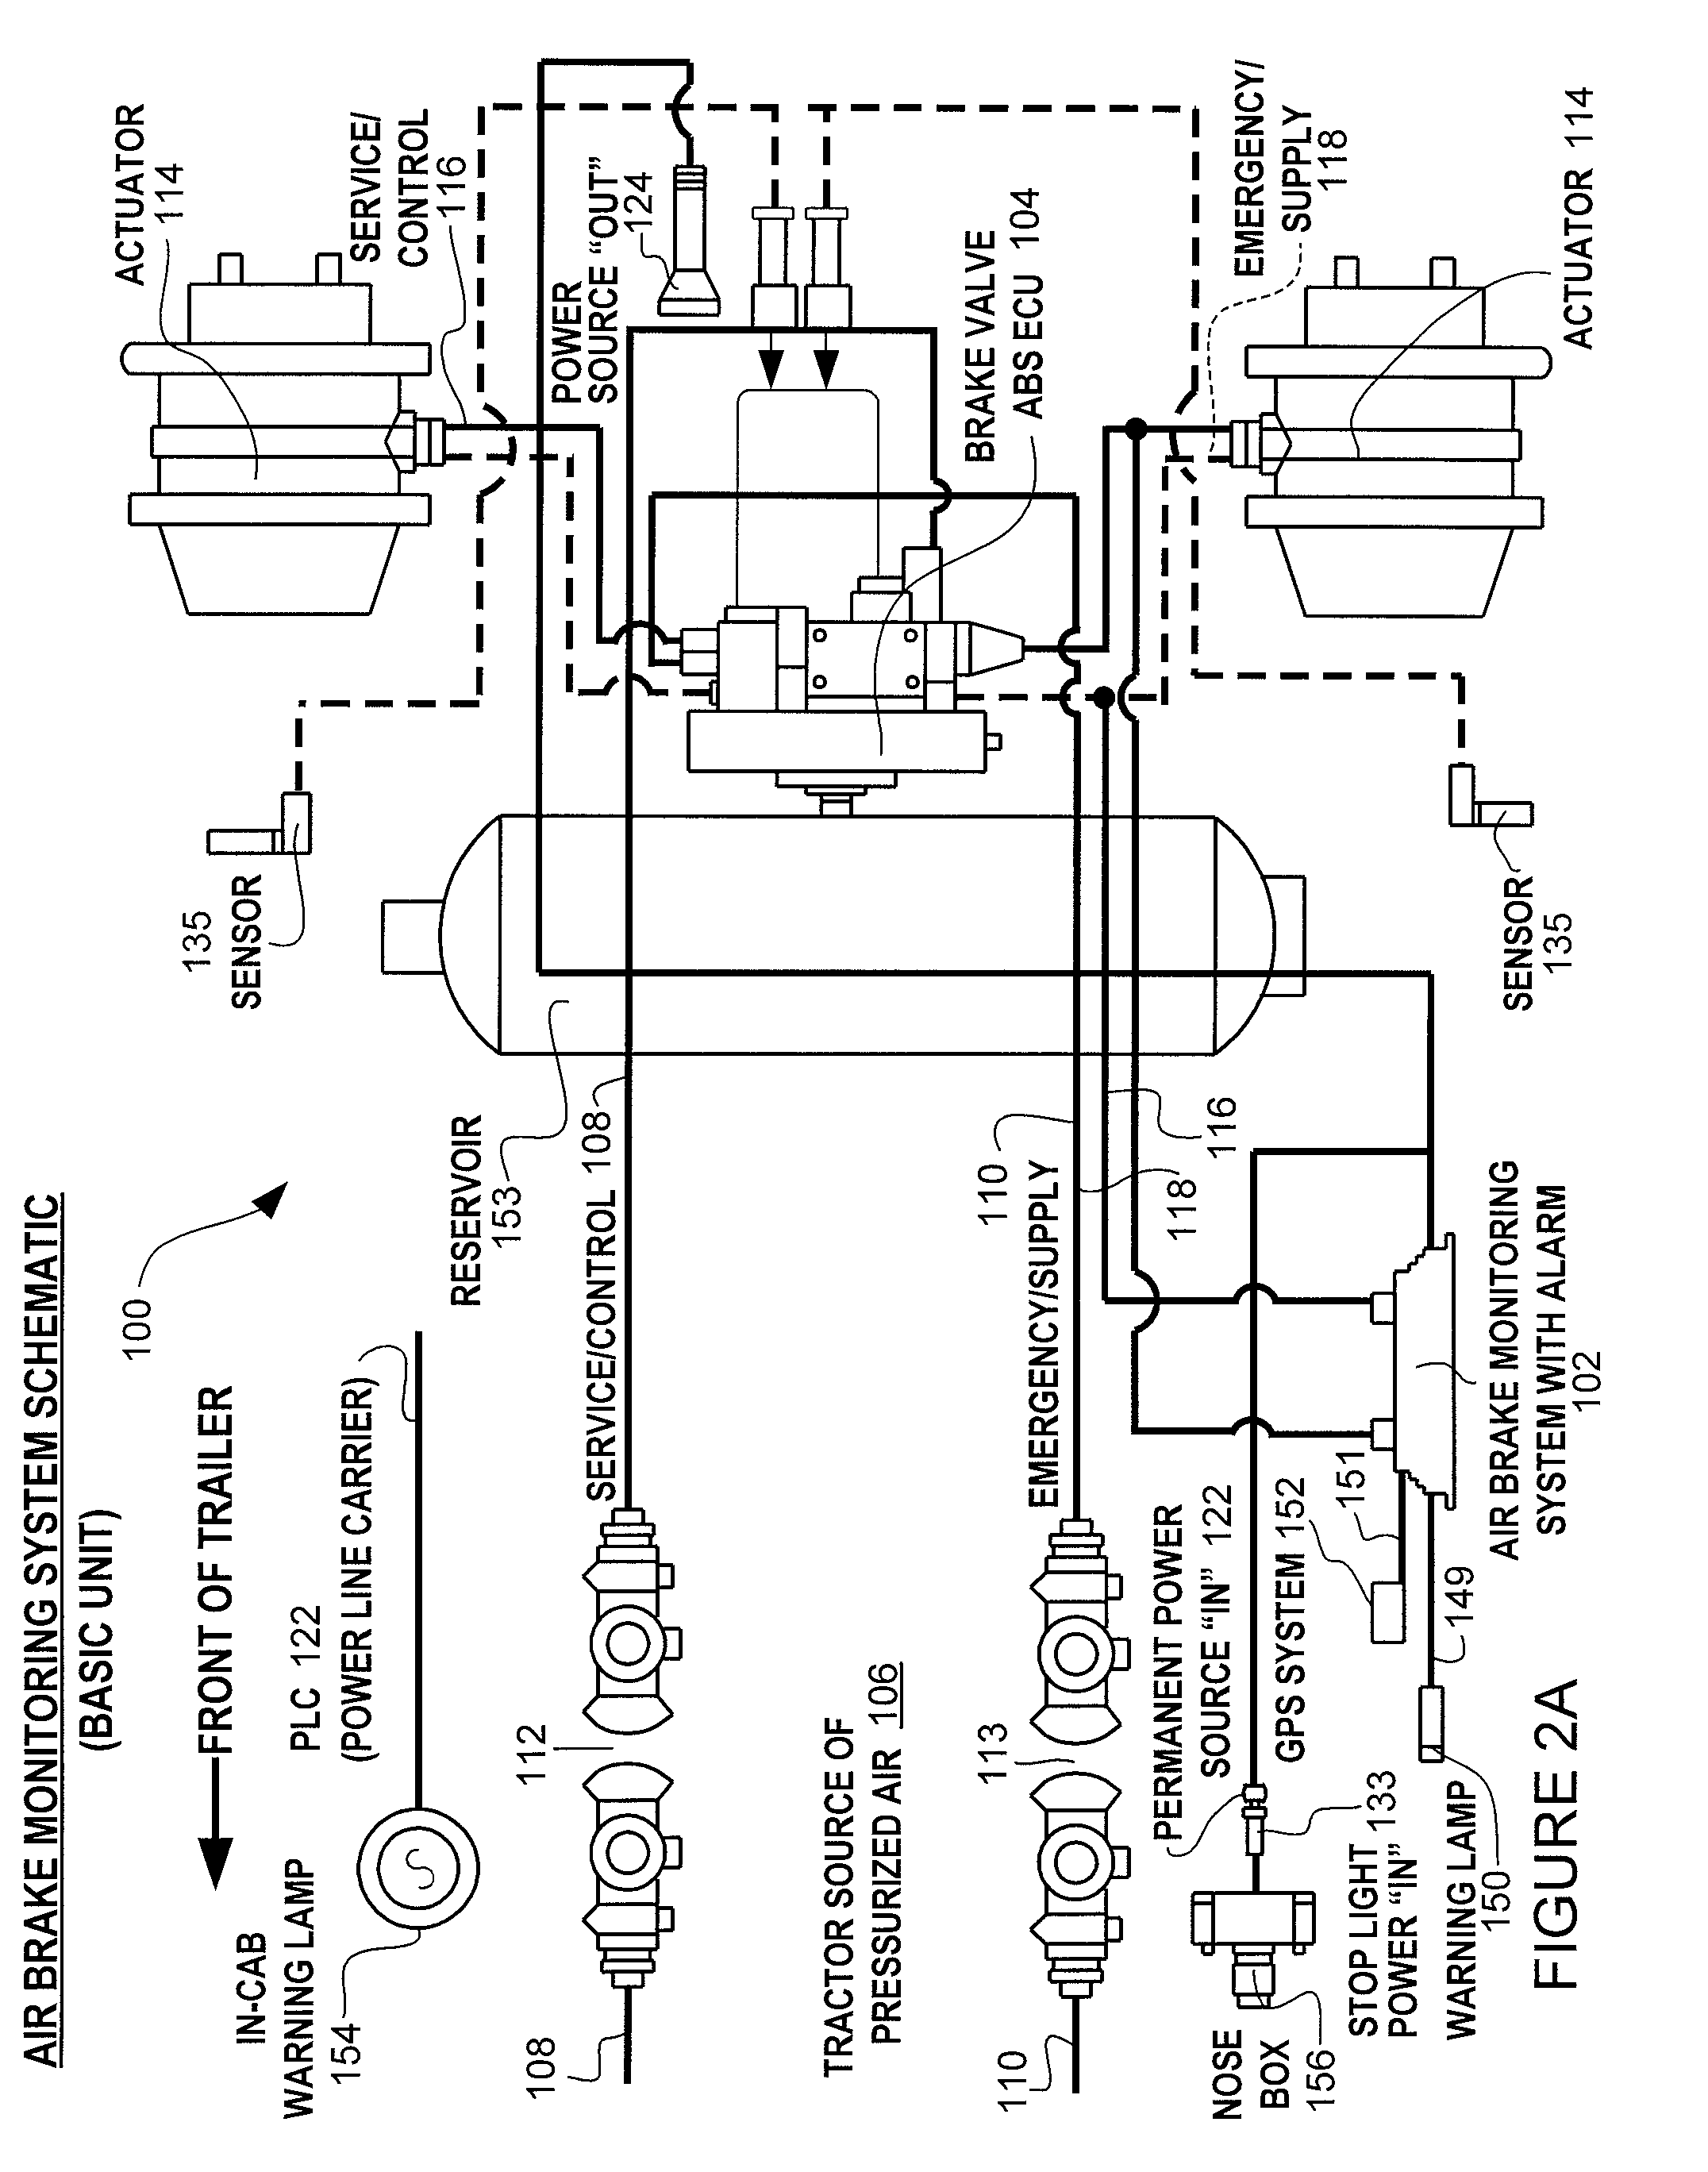 US08204668 20120619 D00003 patent us8204668 brake monitoring system google patentler meritor abs wiring diagram at crackthecode.co